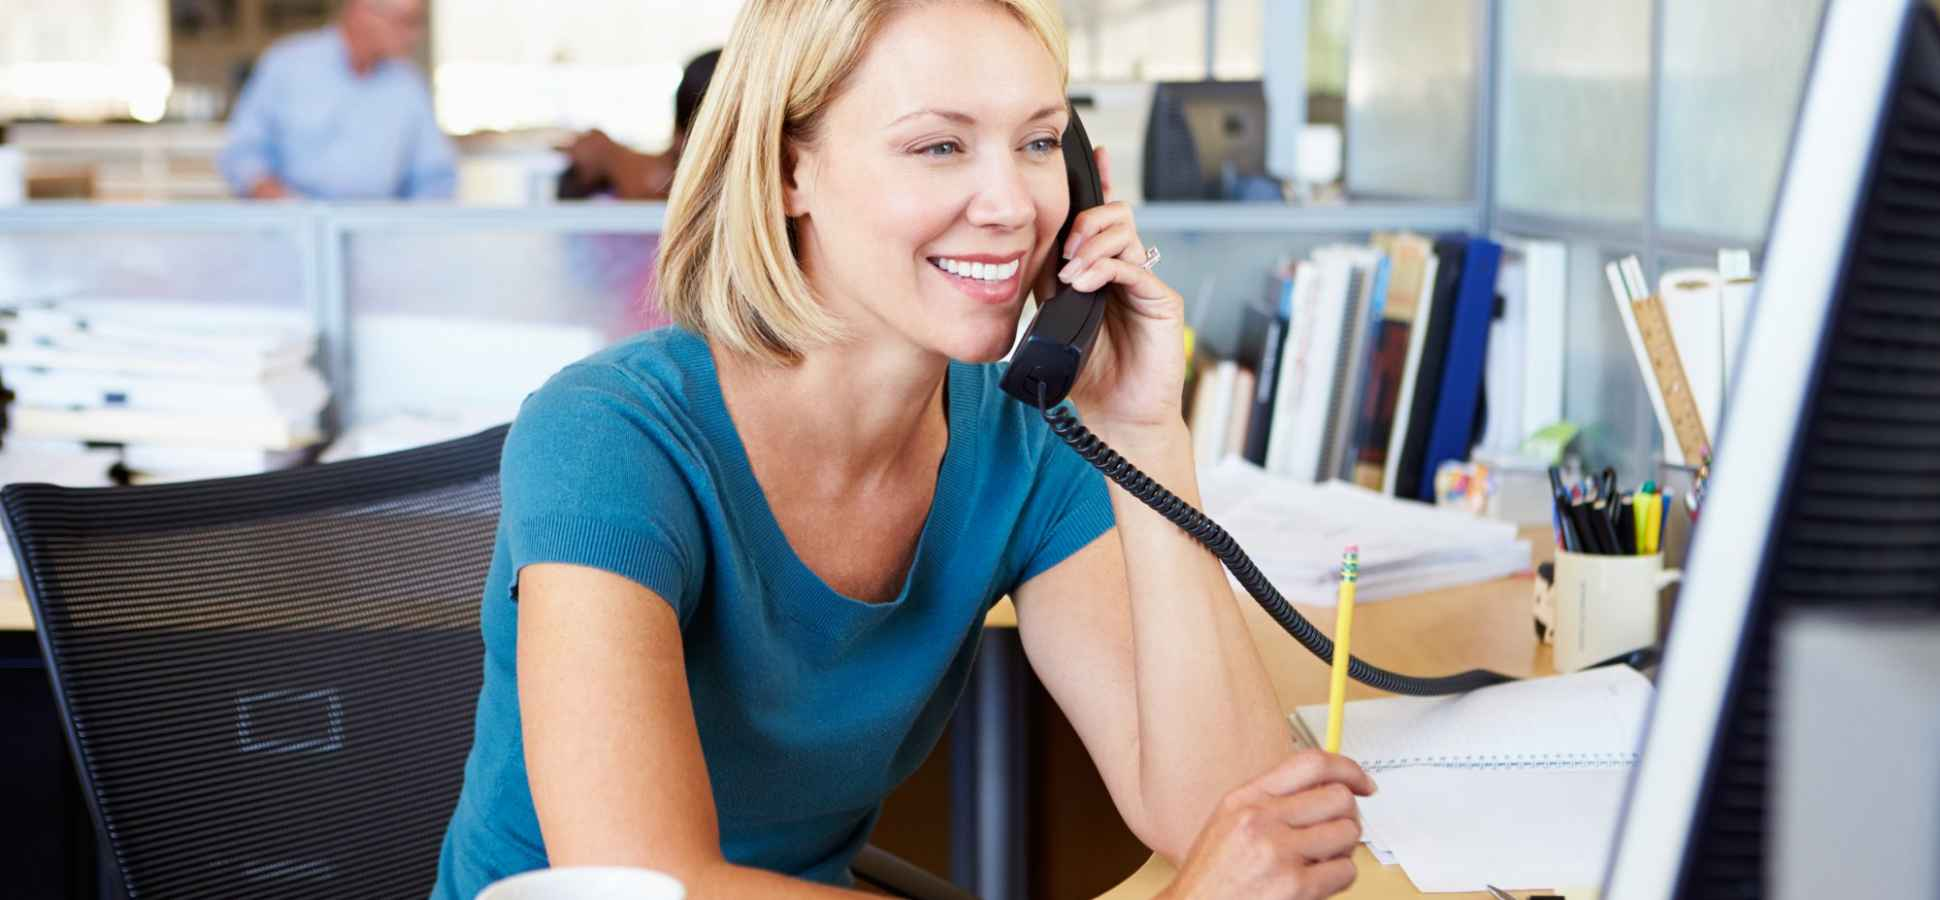 7 Cold Calling Secrets to Quickly Generate More Business